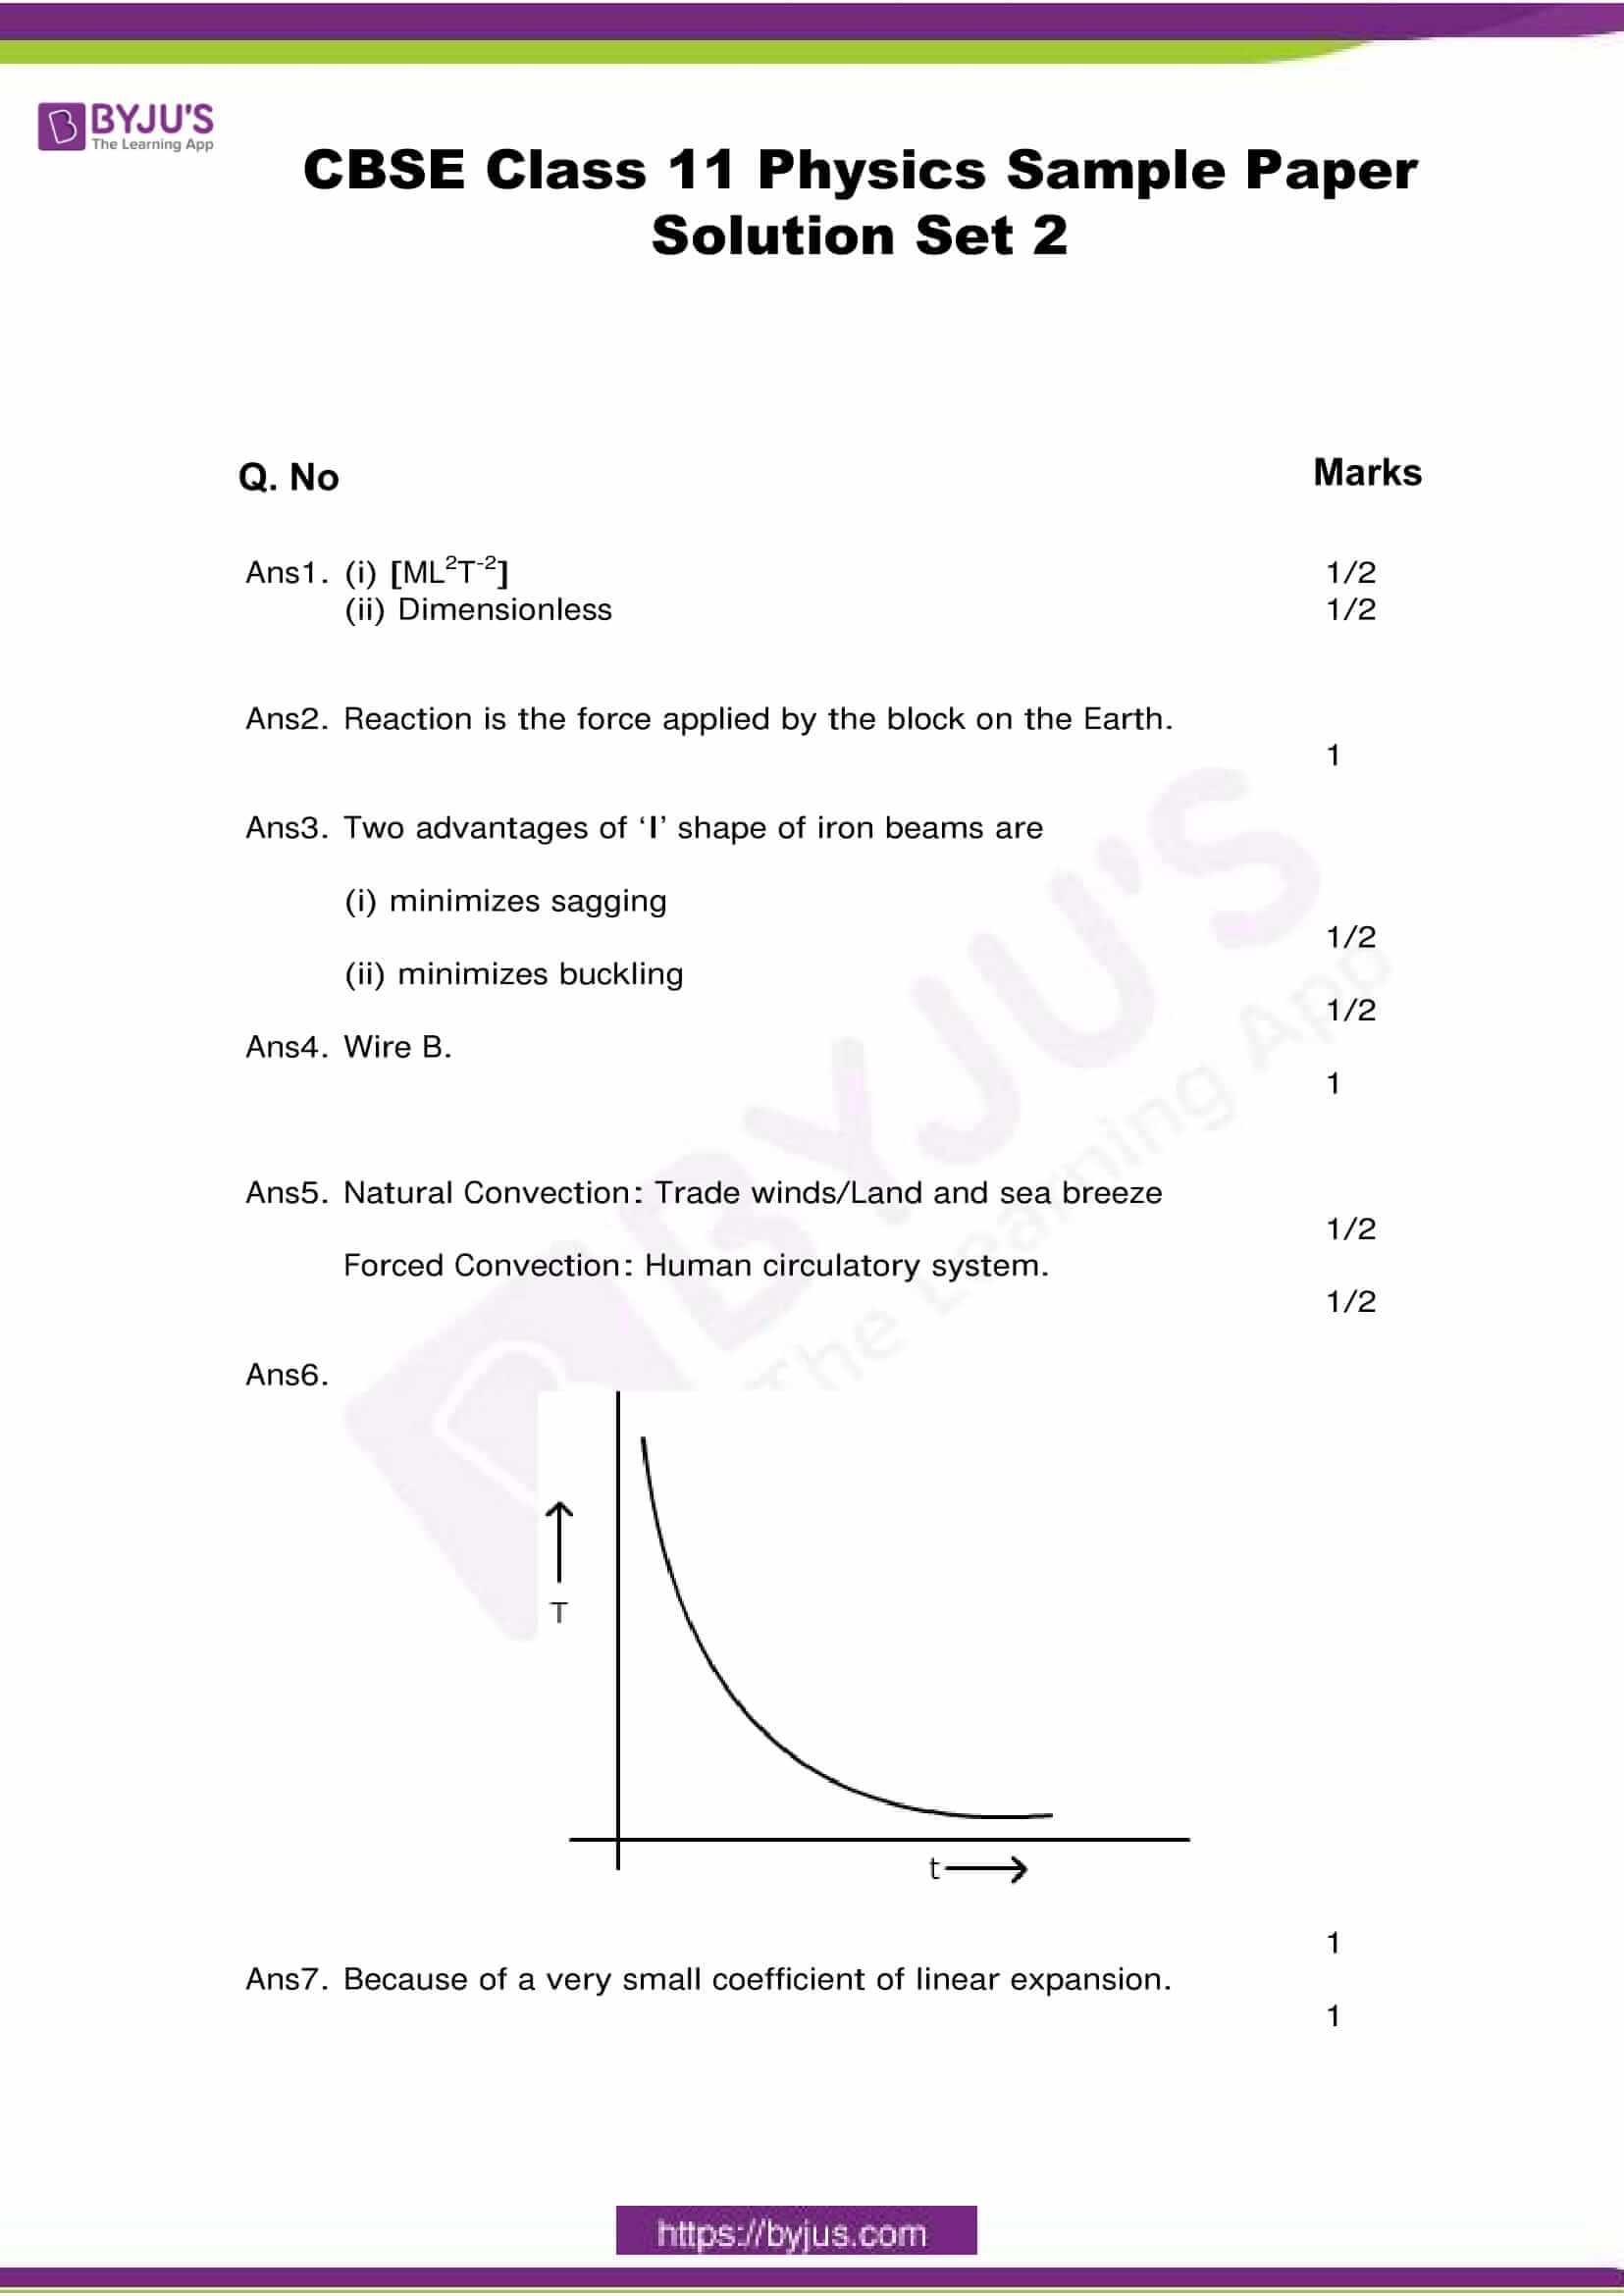 cbse class 11 phy sample paper set 2 solution